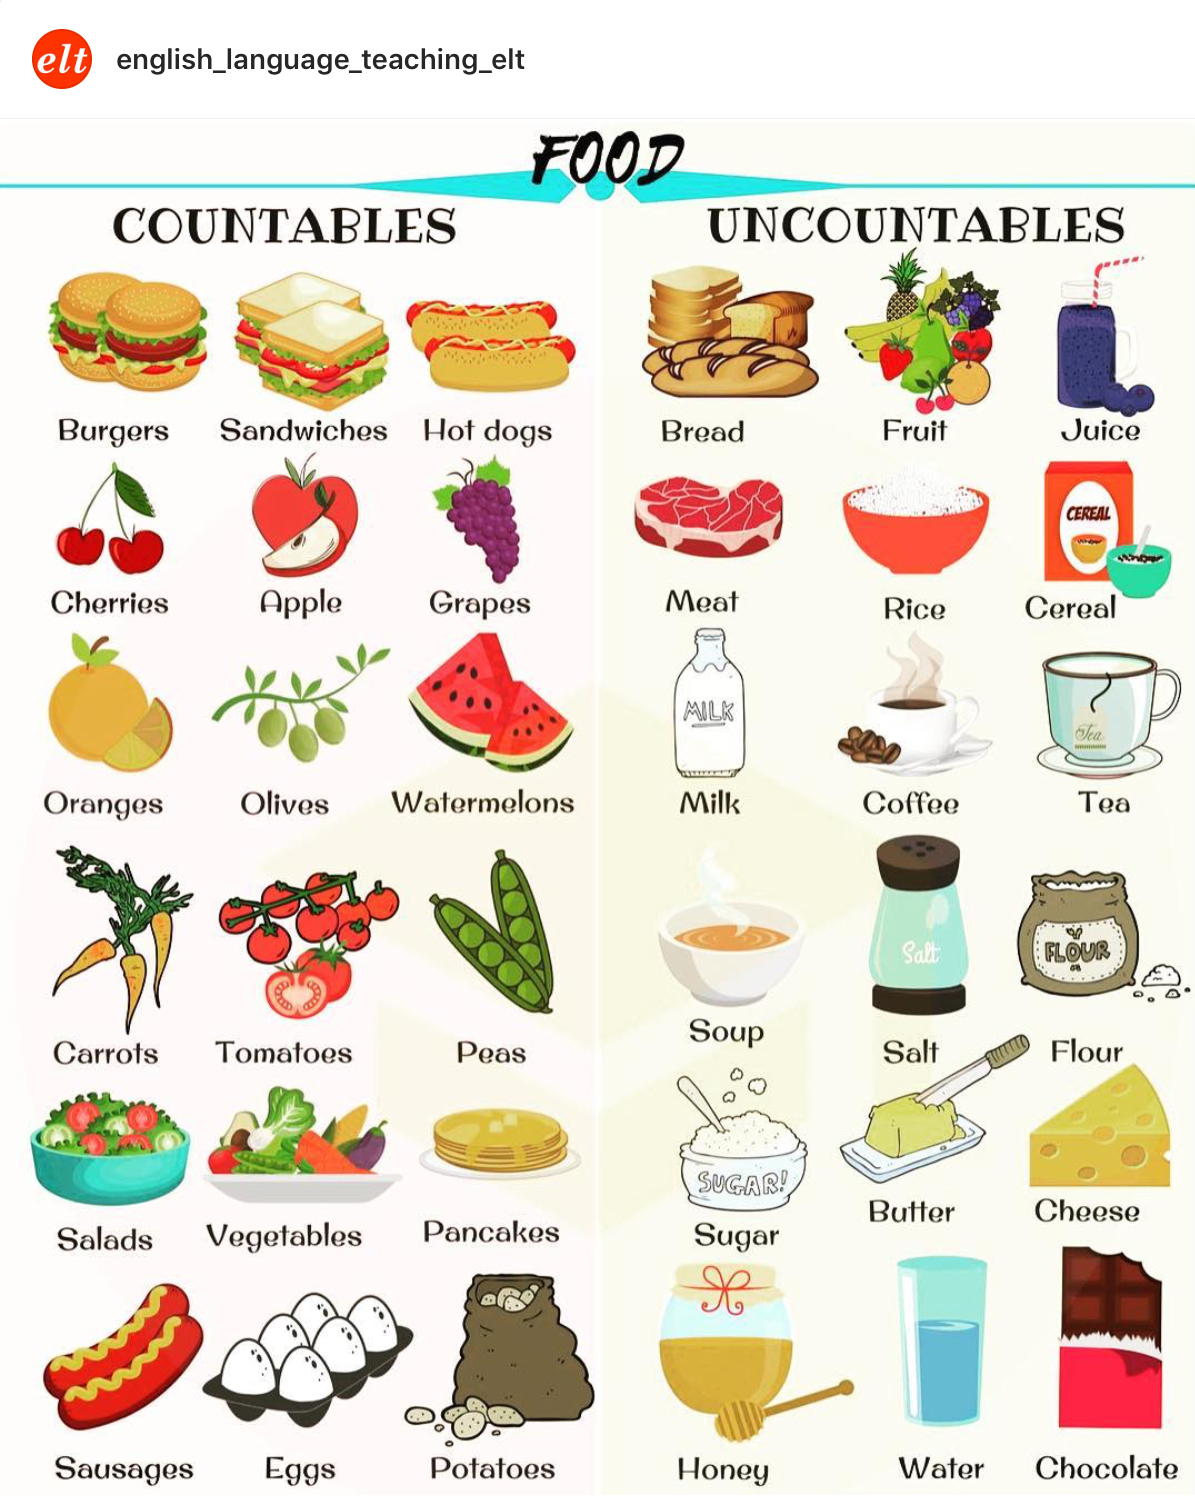 Countables Uncountables Food Info